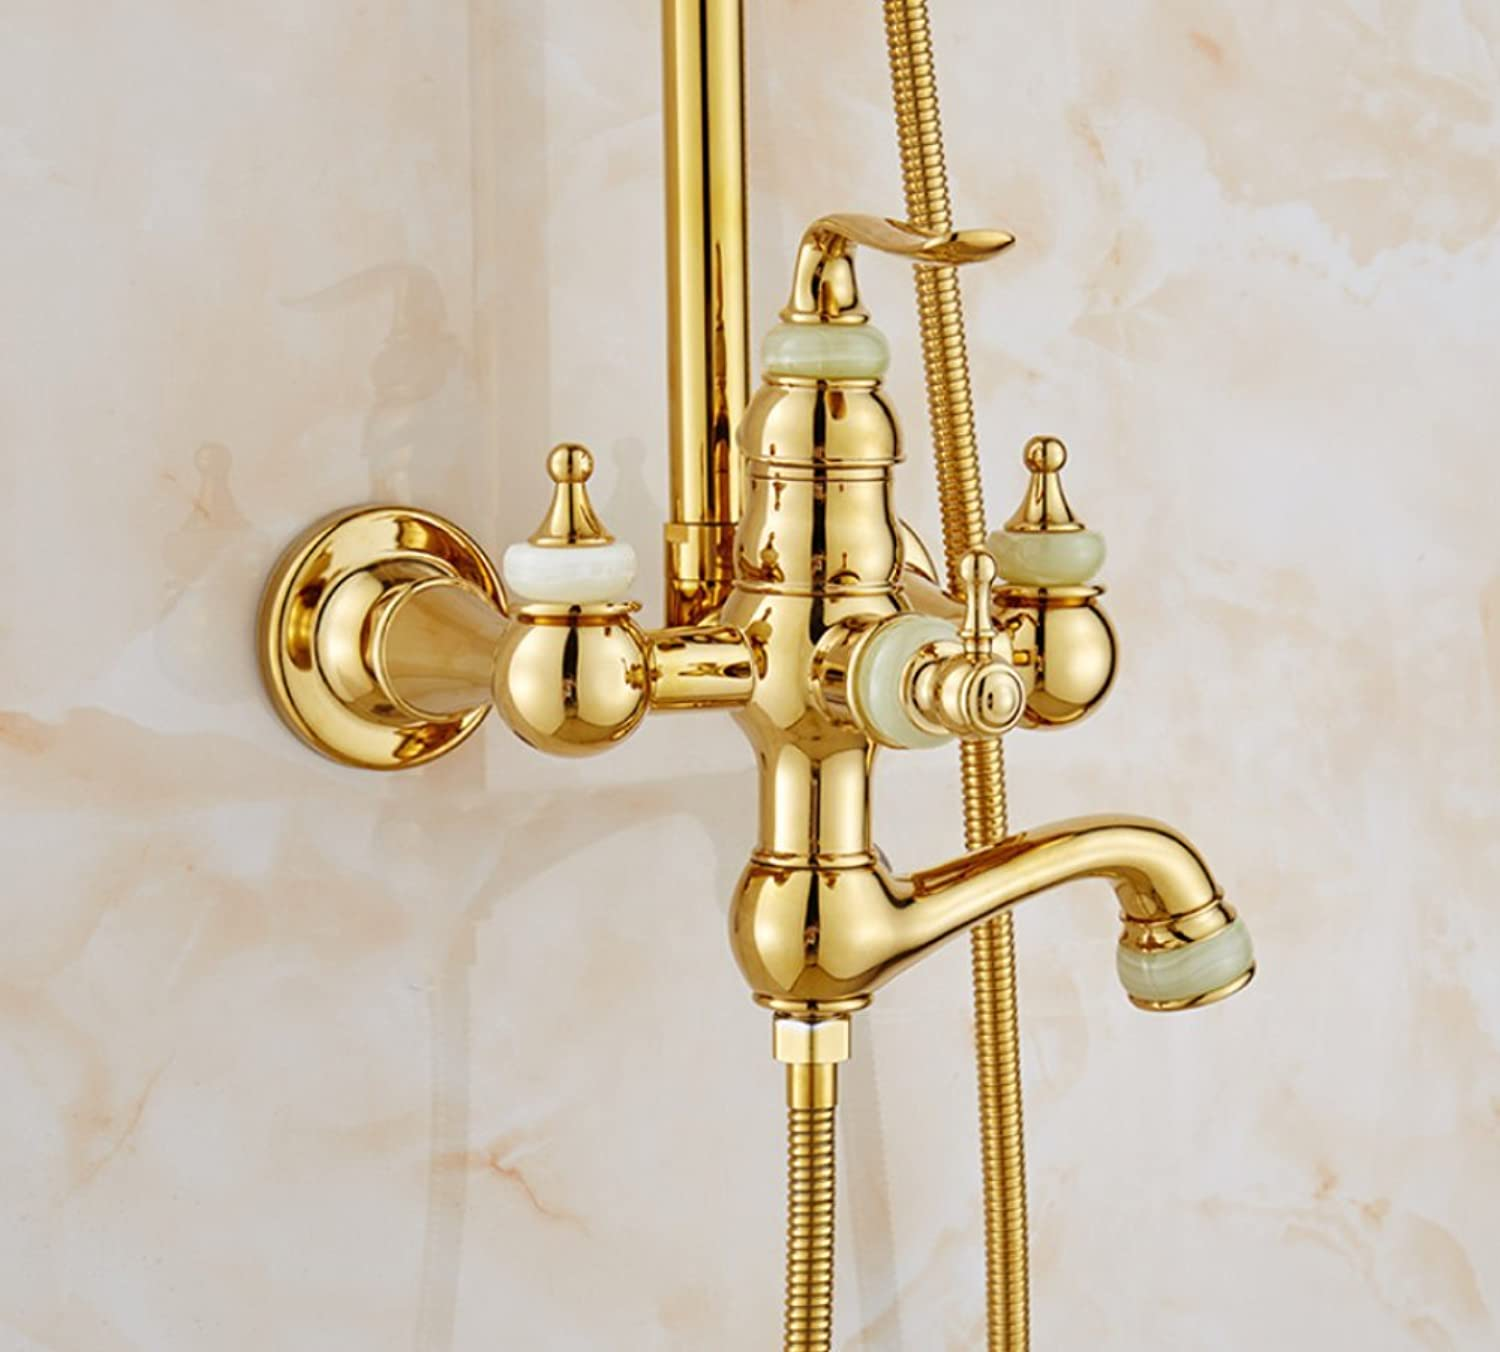 ZHWY take a shower Shower set Copper gold Hot and cold lifting Antique shower head Mixing valve,A